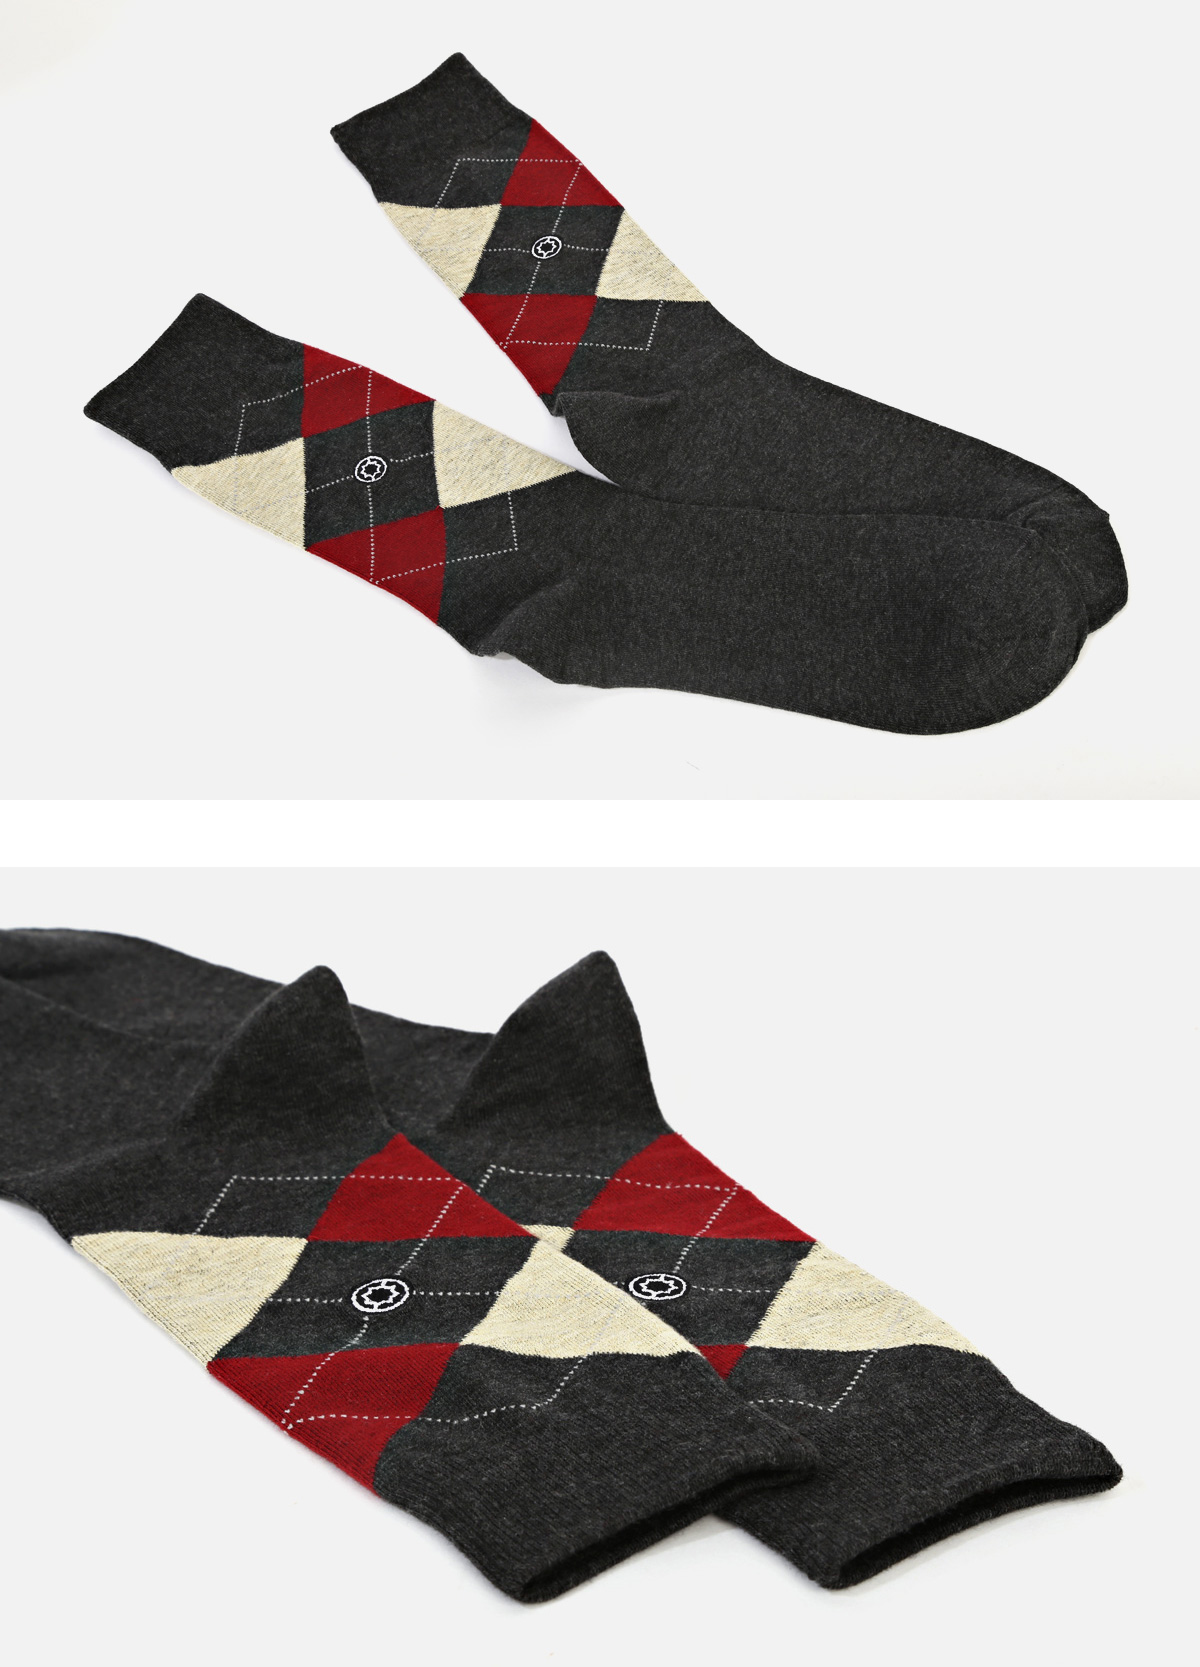 (Standard) Cotton Argyle: Charcoal socks